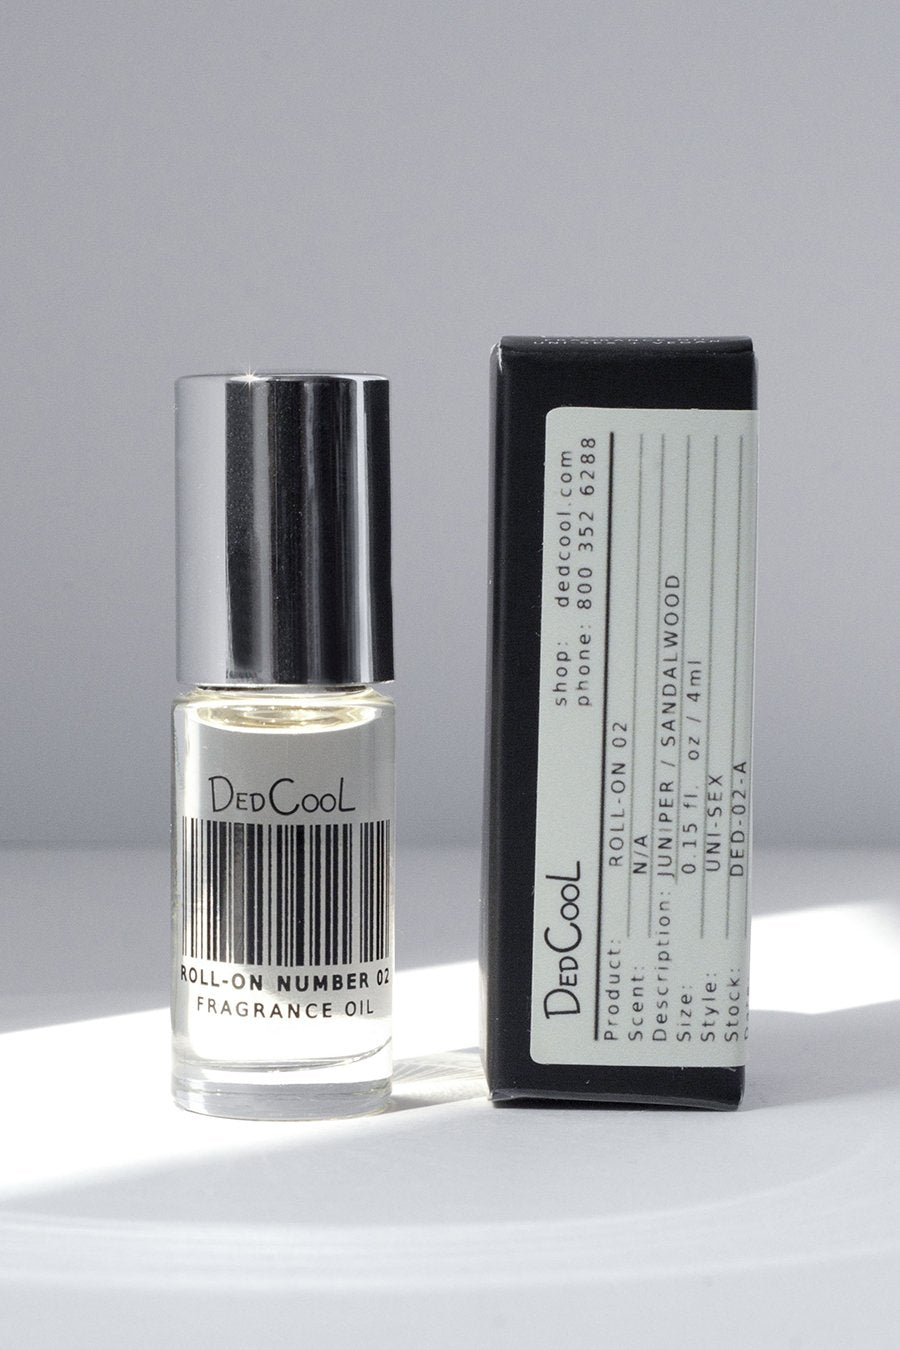 DedCool Roll-On 02. Uni-Sex, Non-Toxic, Vegan, Natural, Clean, Safe, Organic Fragrance Oil. Made in Los Angeles.